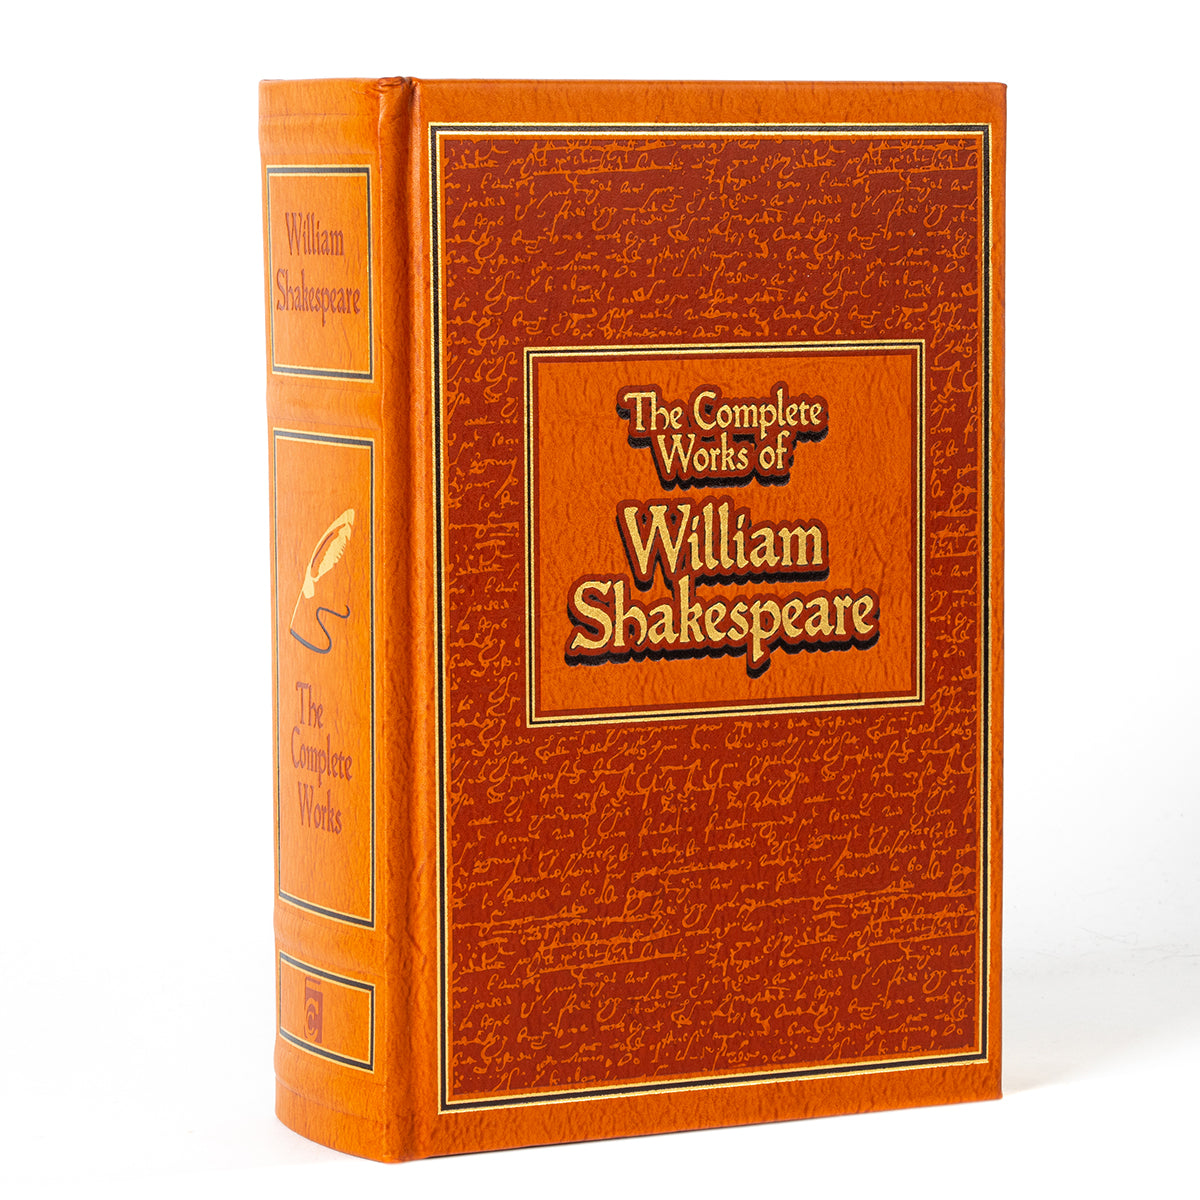 The Complete Works of William Shakespeare by Shakespeare